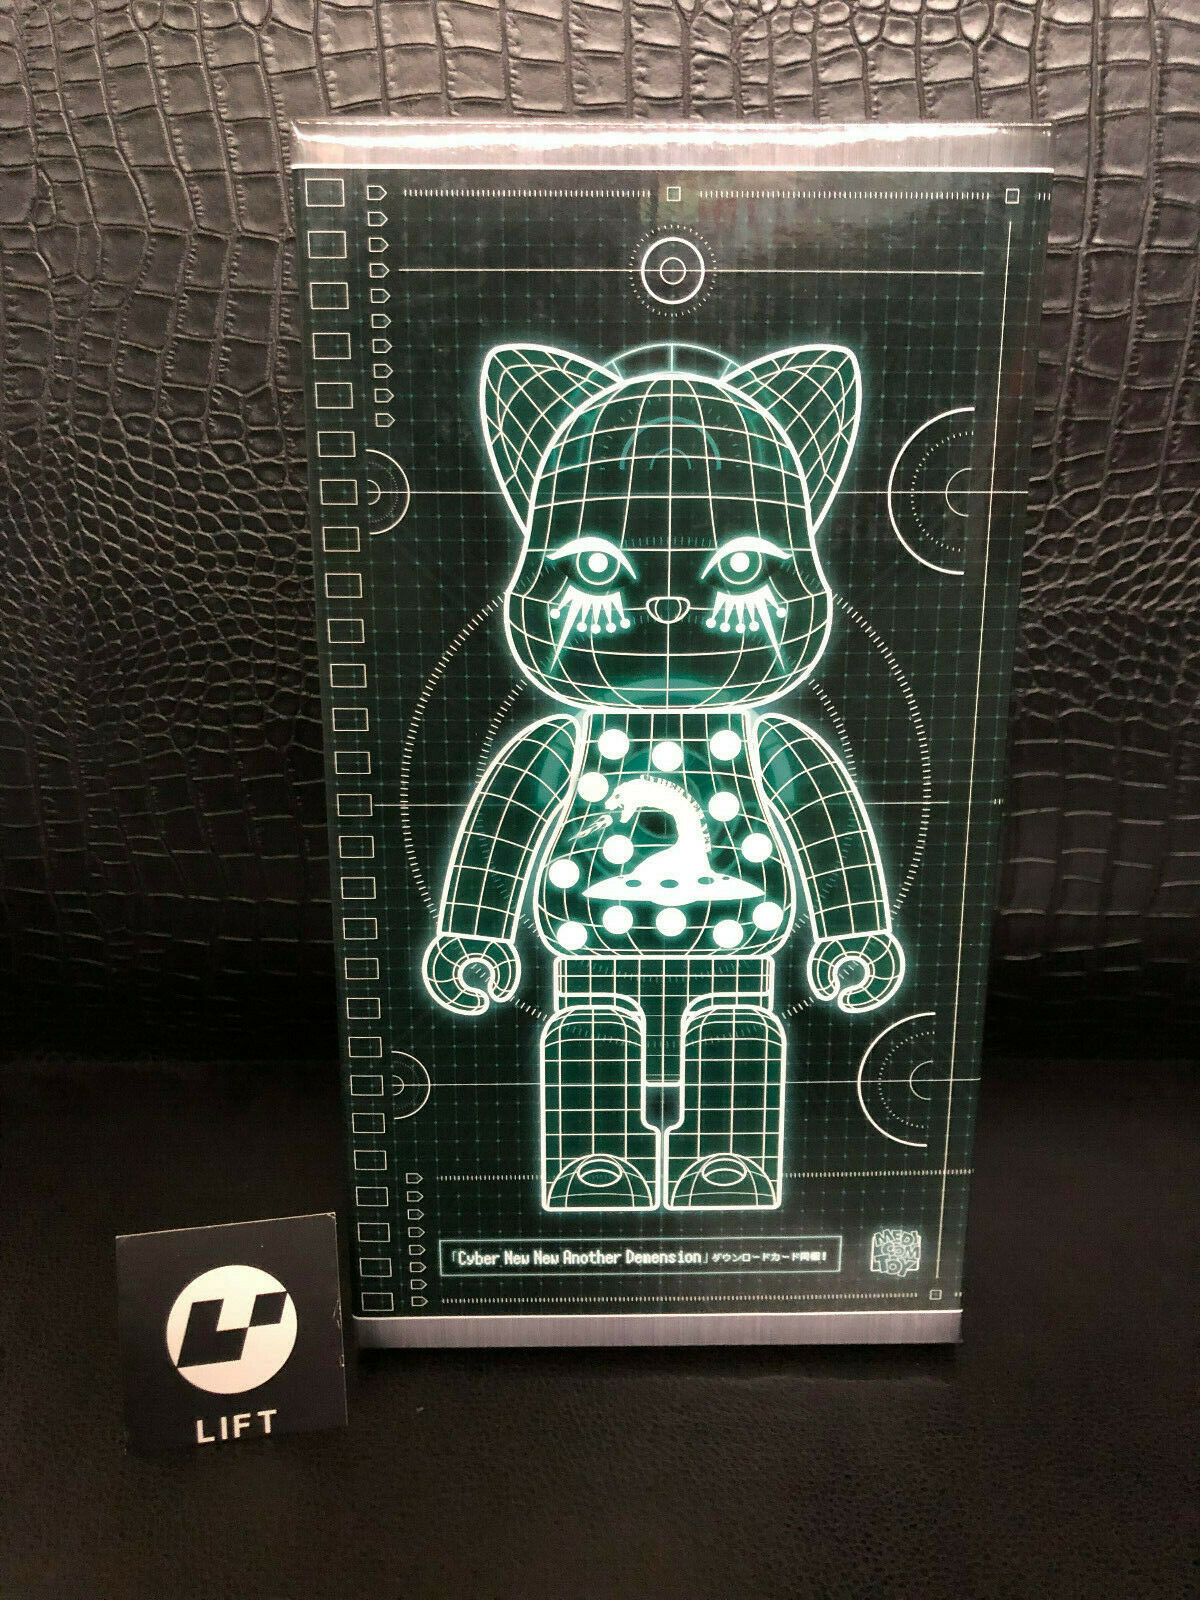 Medicom 400% NY@brick Be@rbrick Cyber Another Deessision orsobrick 1pc